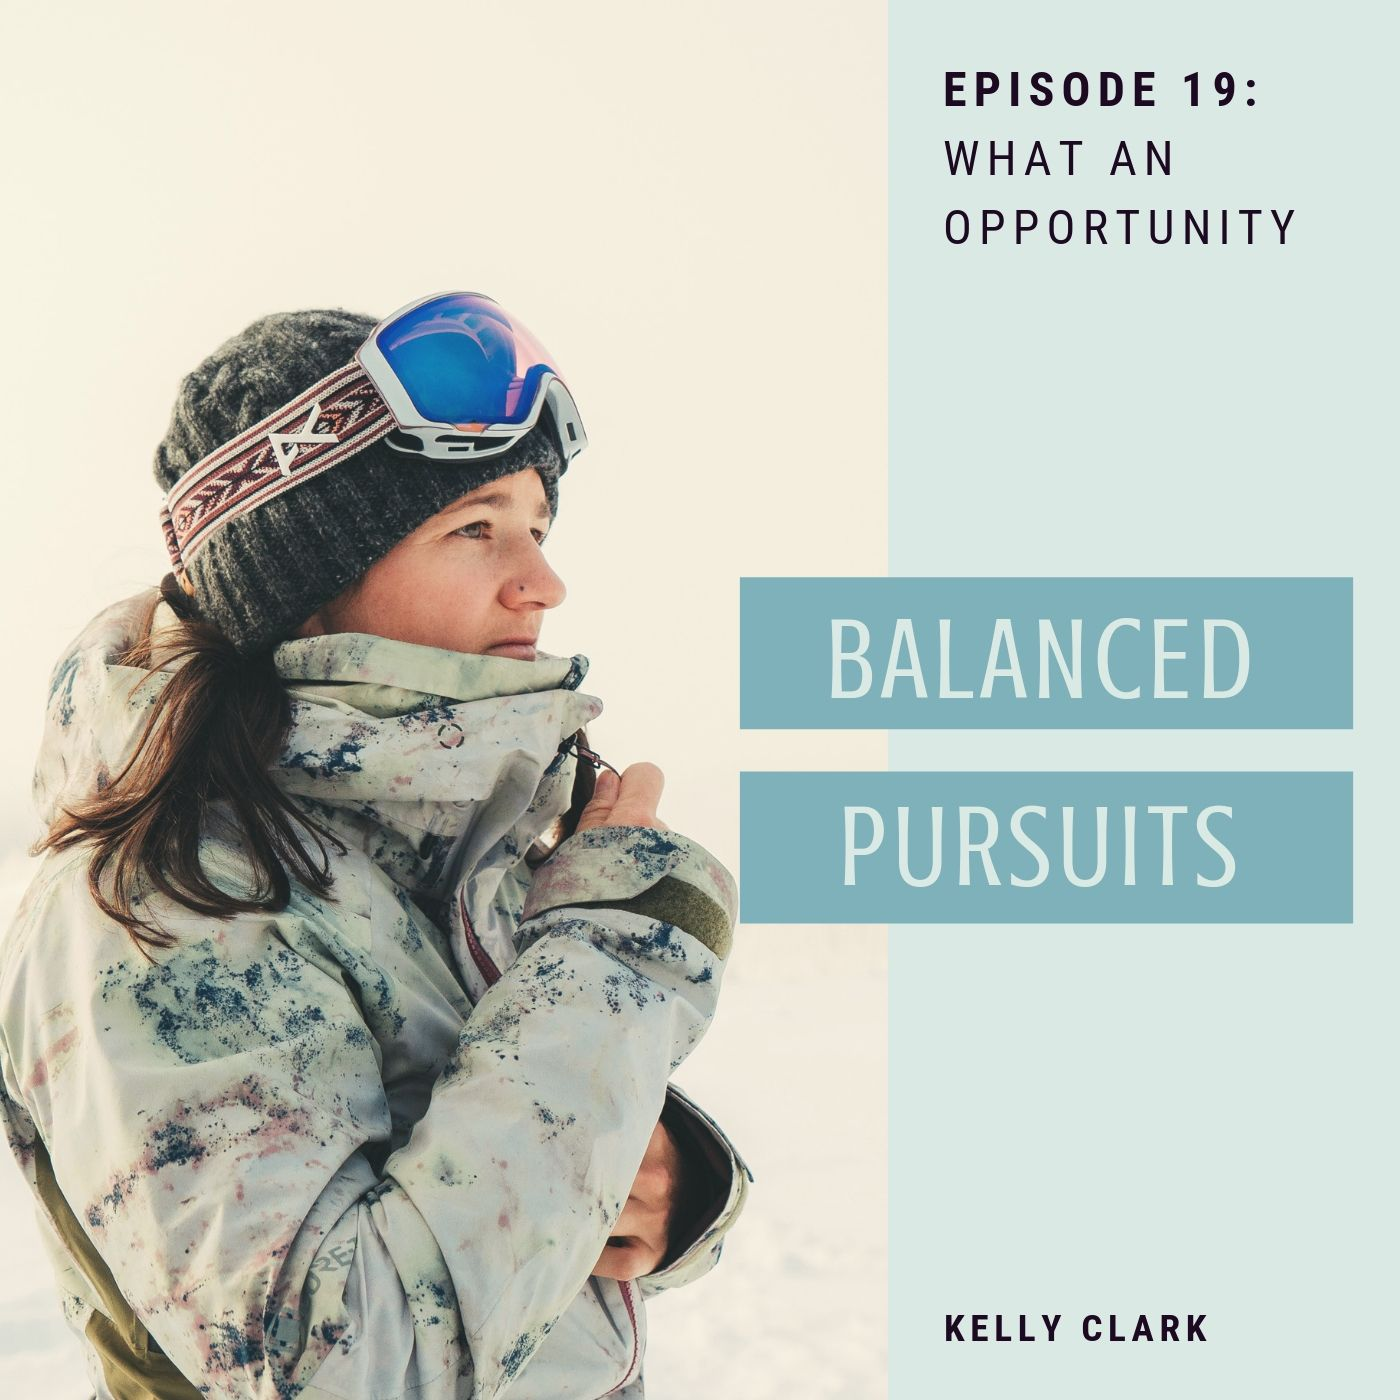 Episode 19: Kelly Clark - What An Opportunity